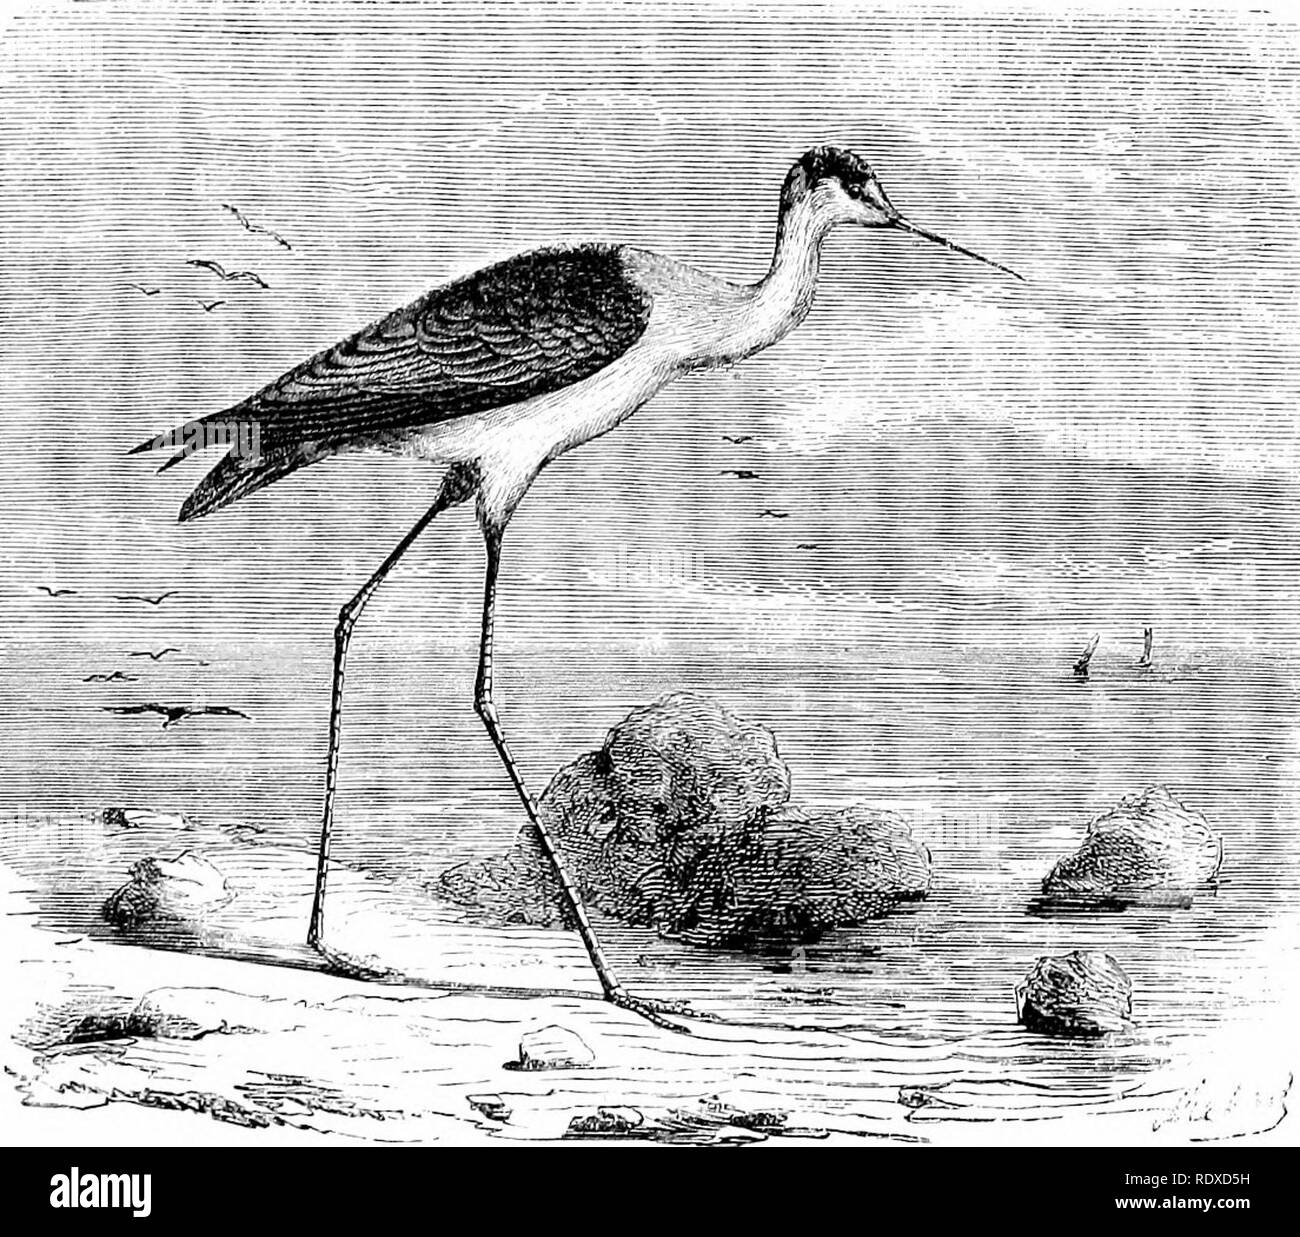 . Reptiles and birds : a popular account of their various orders : with a description of the habits and economy of the most interesting . Birds; Reptiles. THE STILT BIRD. 321 approacli. It is clever in avoiding snares set for it by tlie fowler, and ingenious in escaping—either by flight or swimming —its pursuers, The nest of the Avocet is a very simple struc- ture, generally made by placing a few blades of grass in a hole in the sand. Here it lays two or three eggs, of which it is frequently robbed ; for, like those of the Plover and others, its congeners, they are regarded as great delicacies - Stock Image